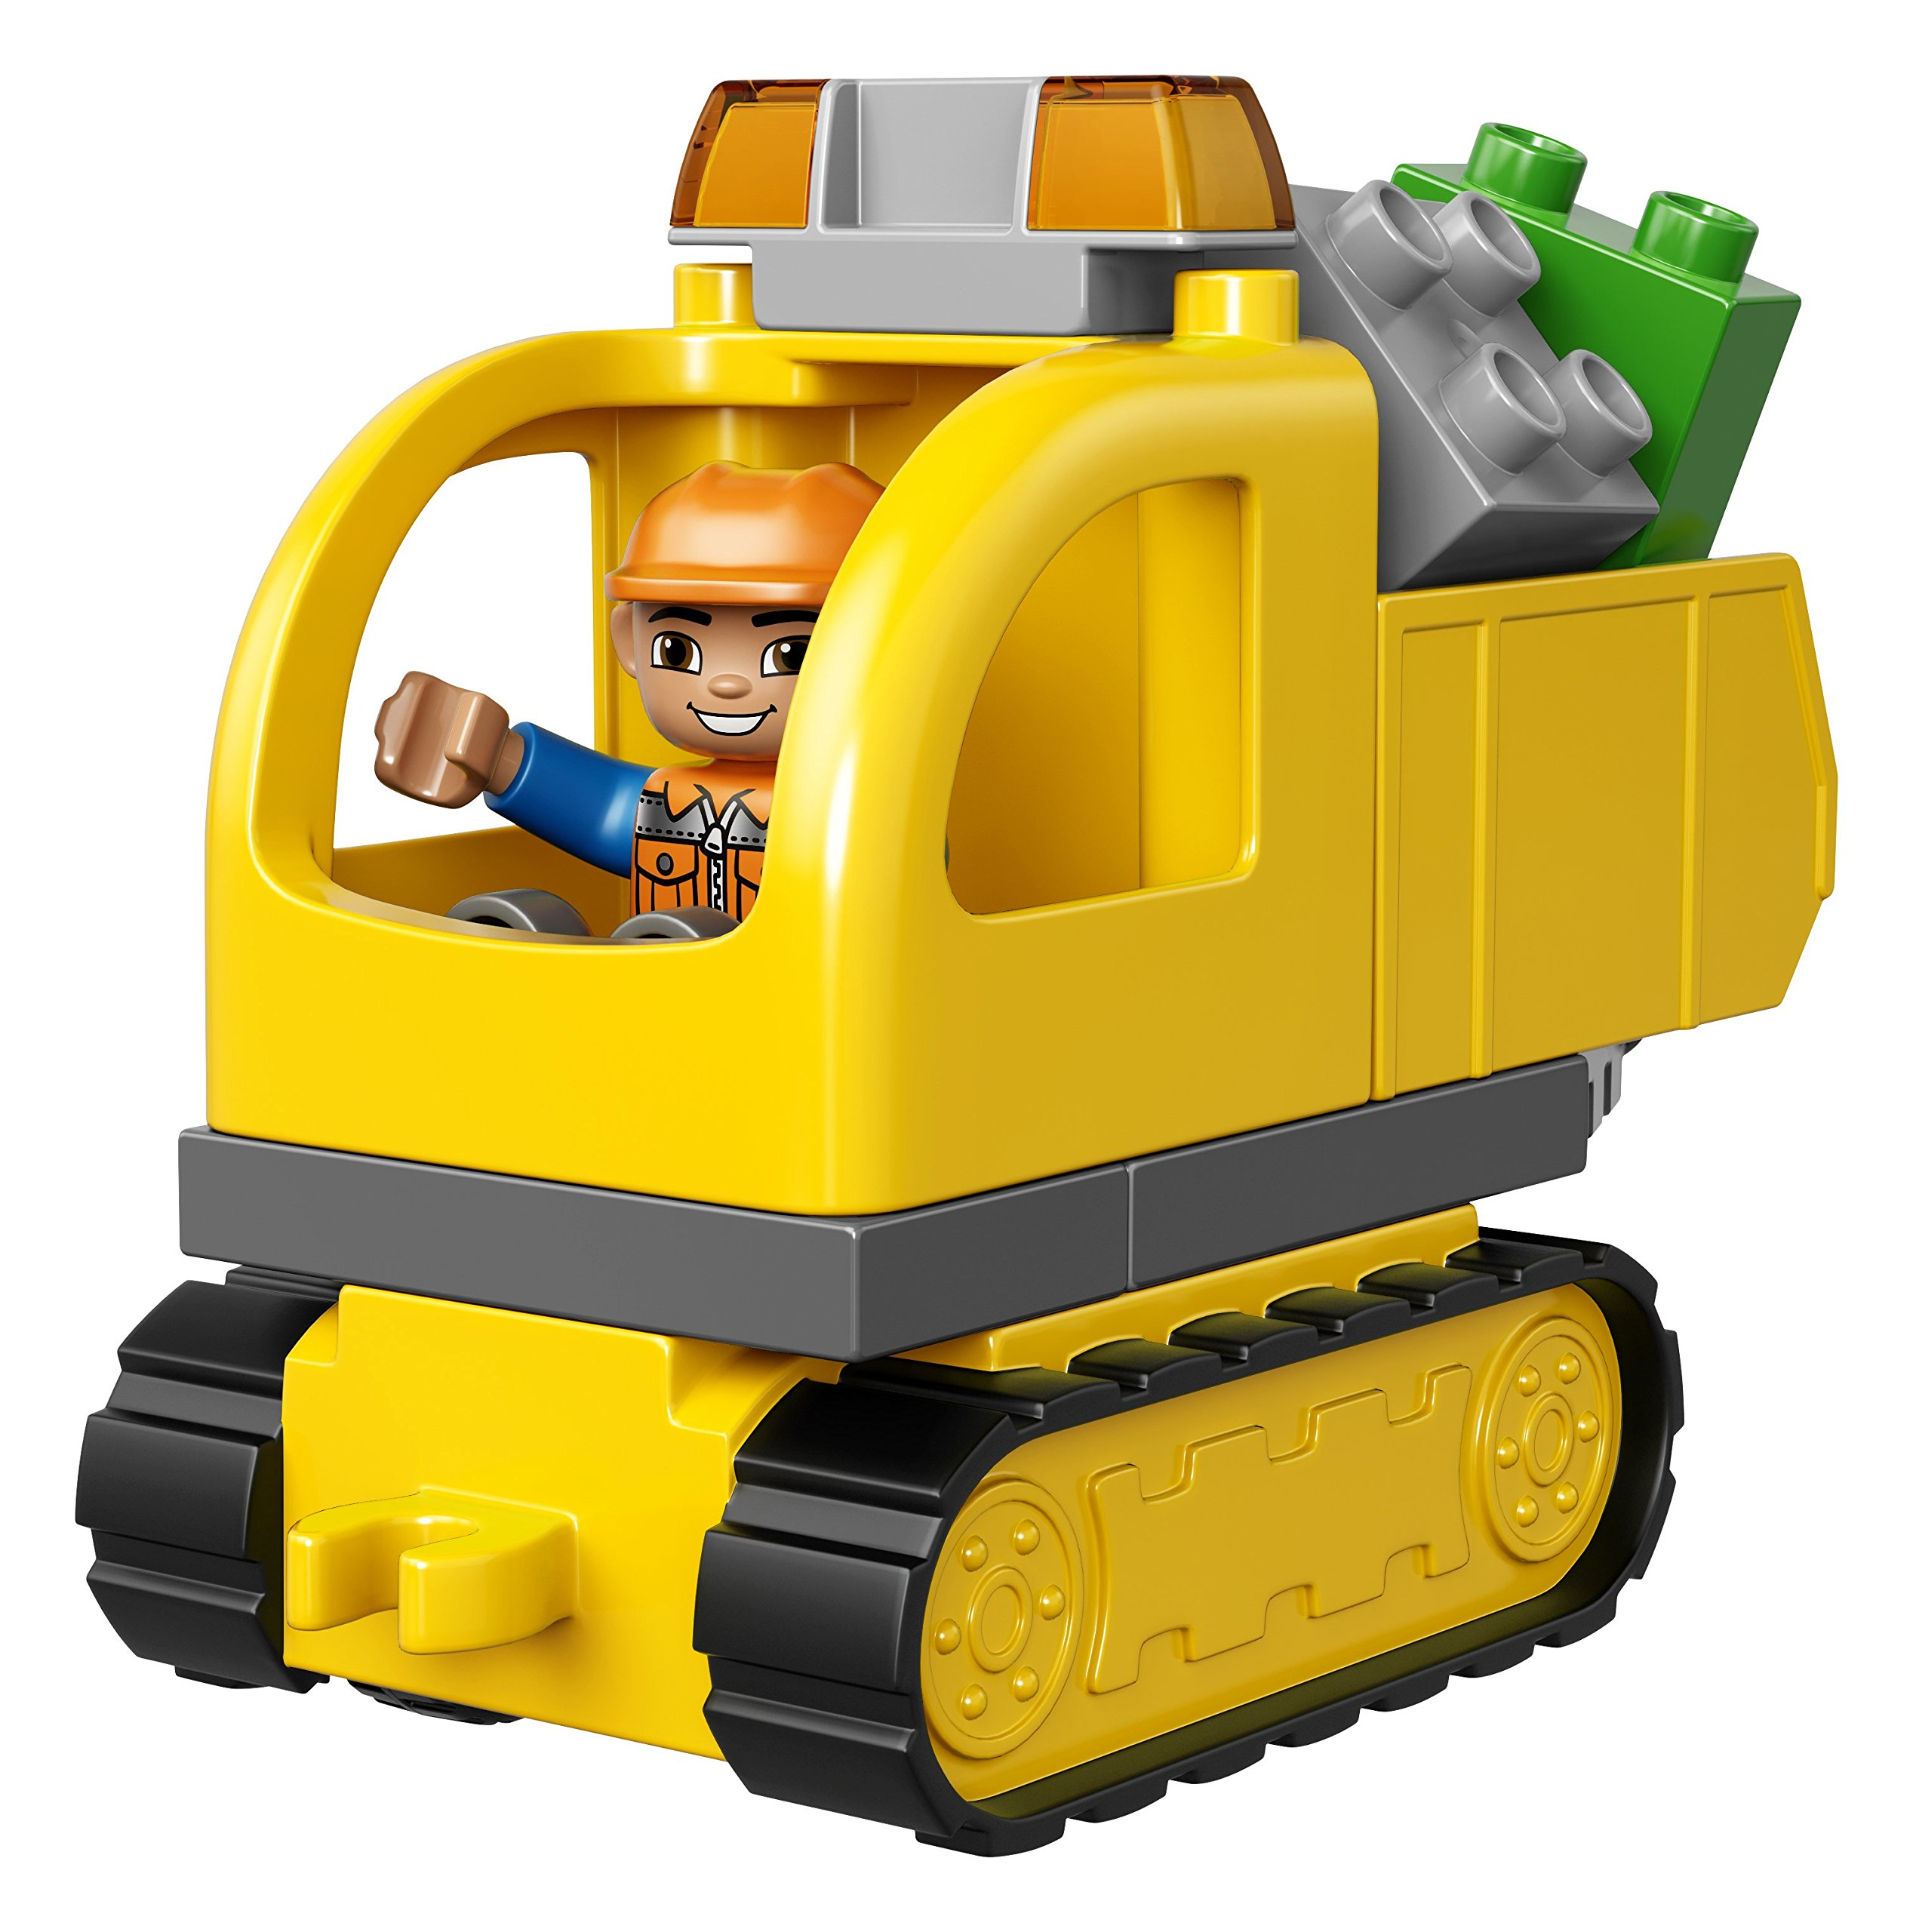 LEGO DUPLO Town Toddler Truck Toy by LEGO (Image #8)